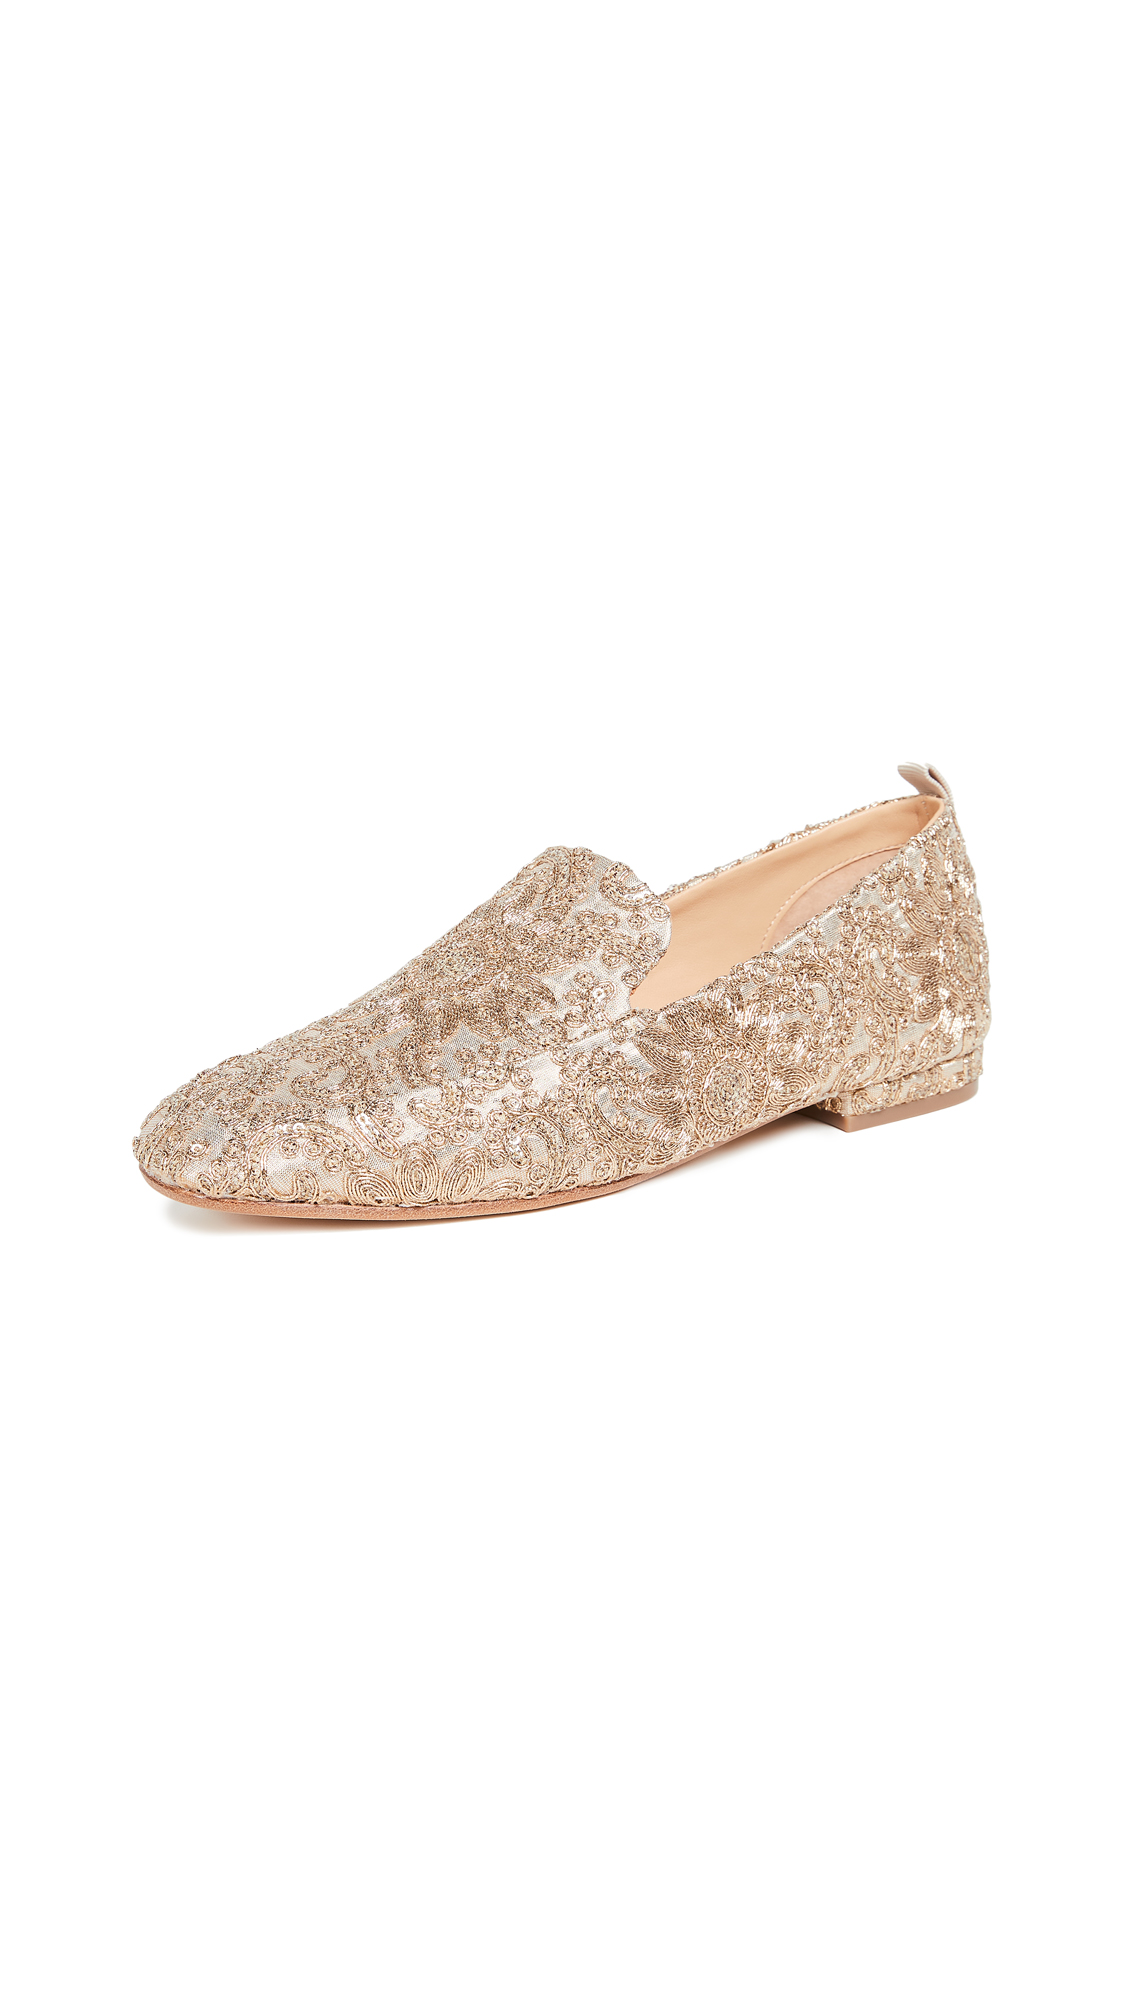 Badgley Mischka Vivianne Loafers